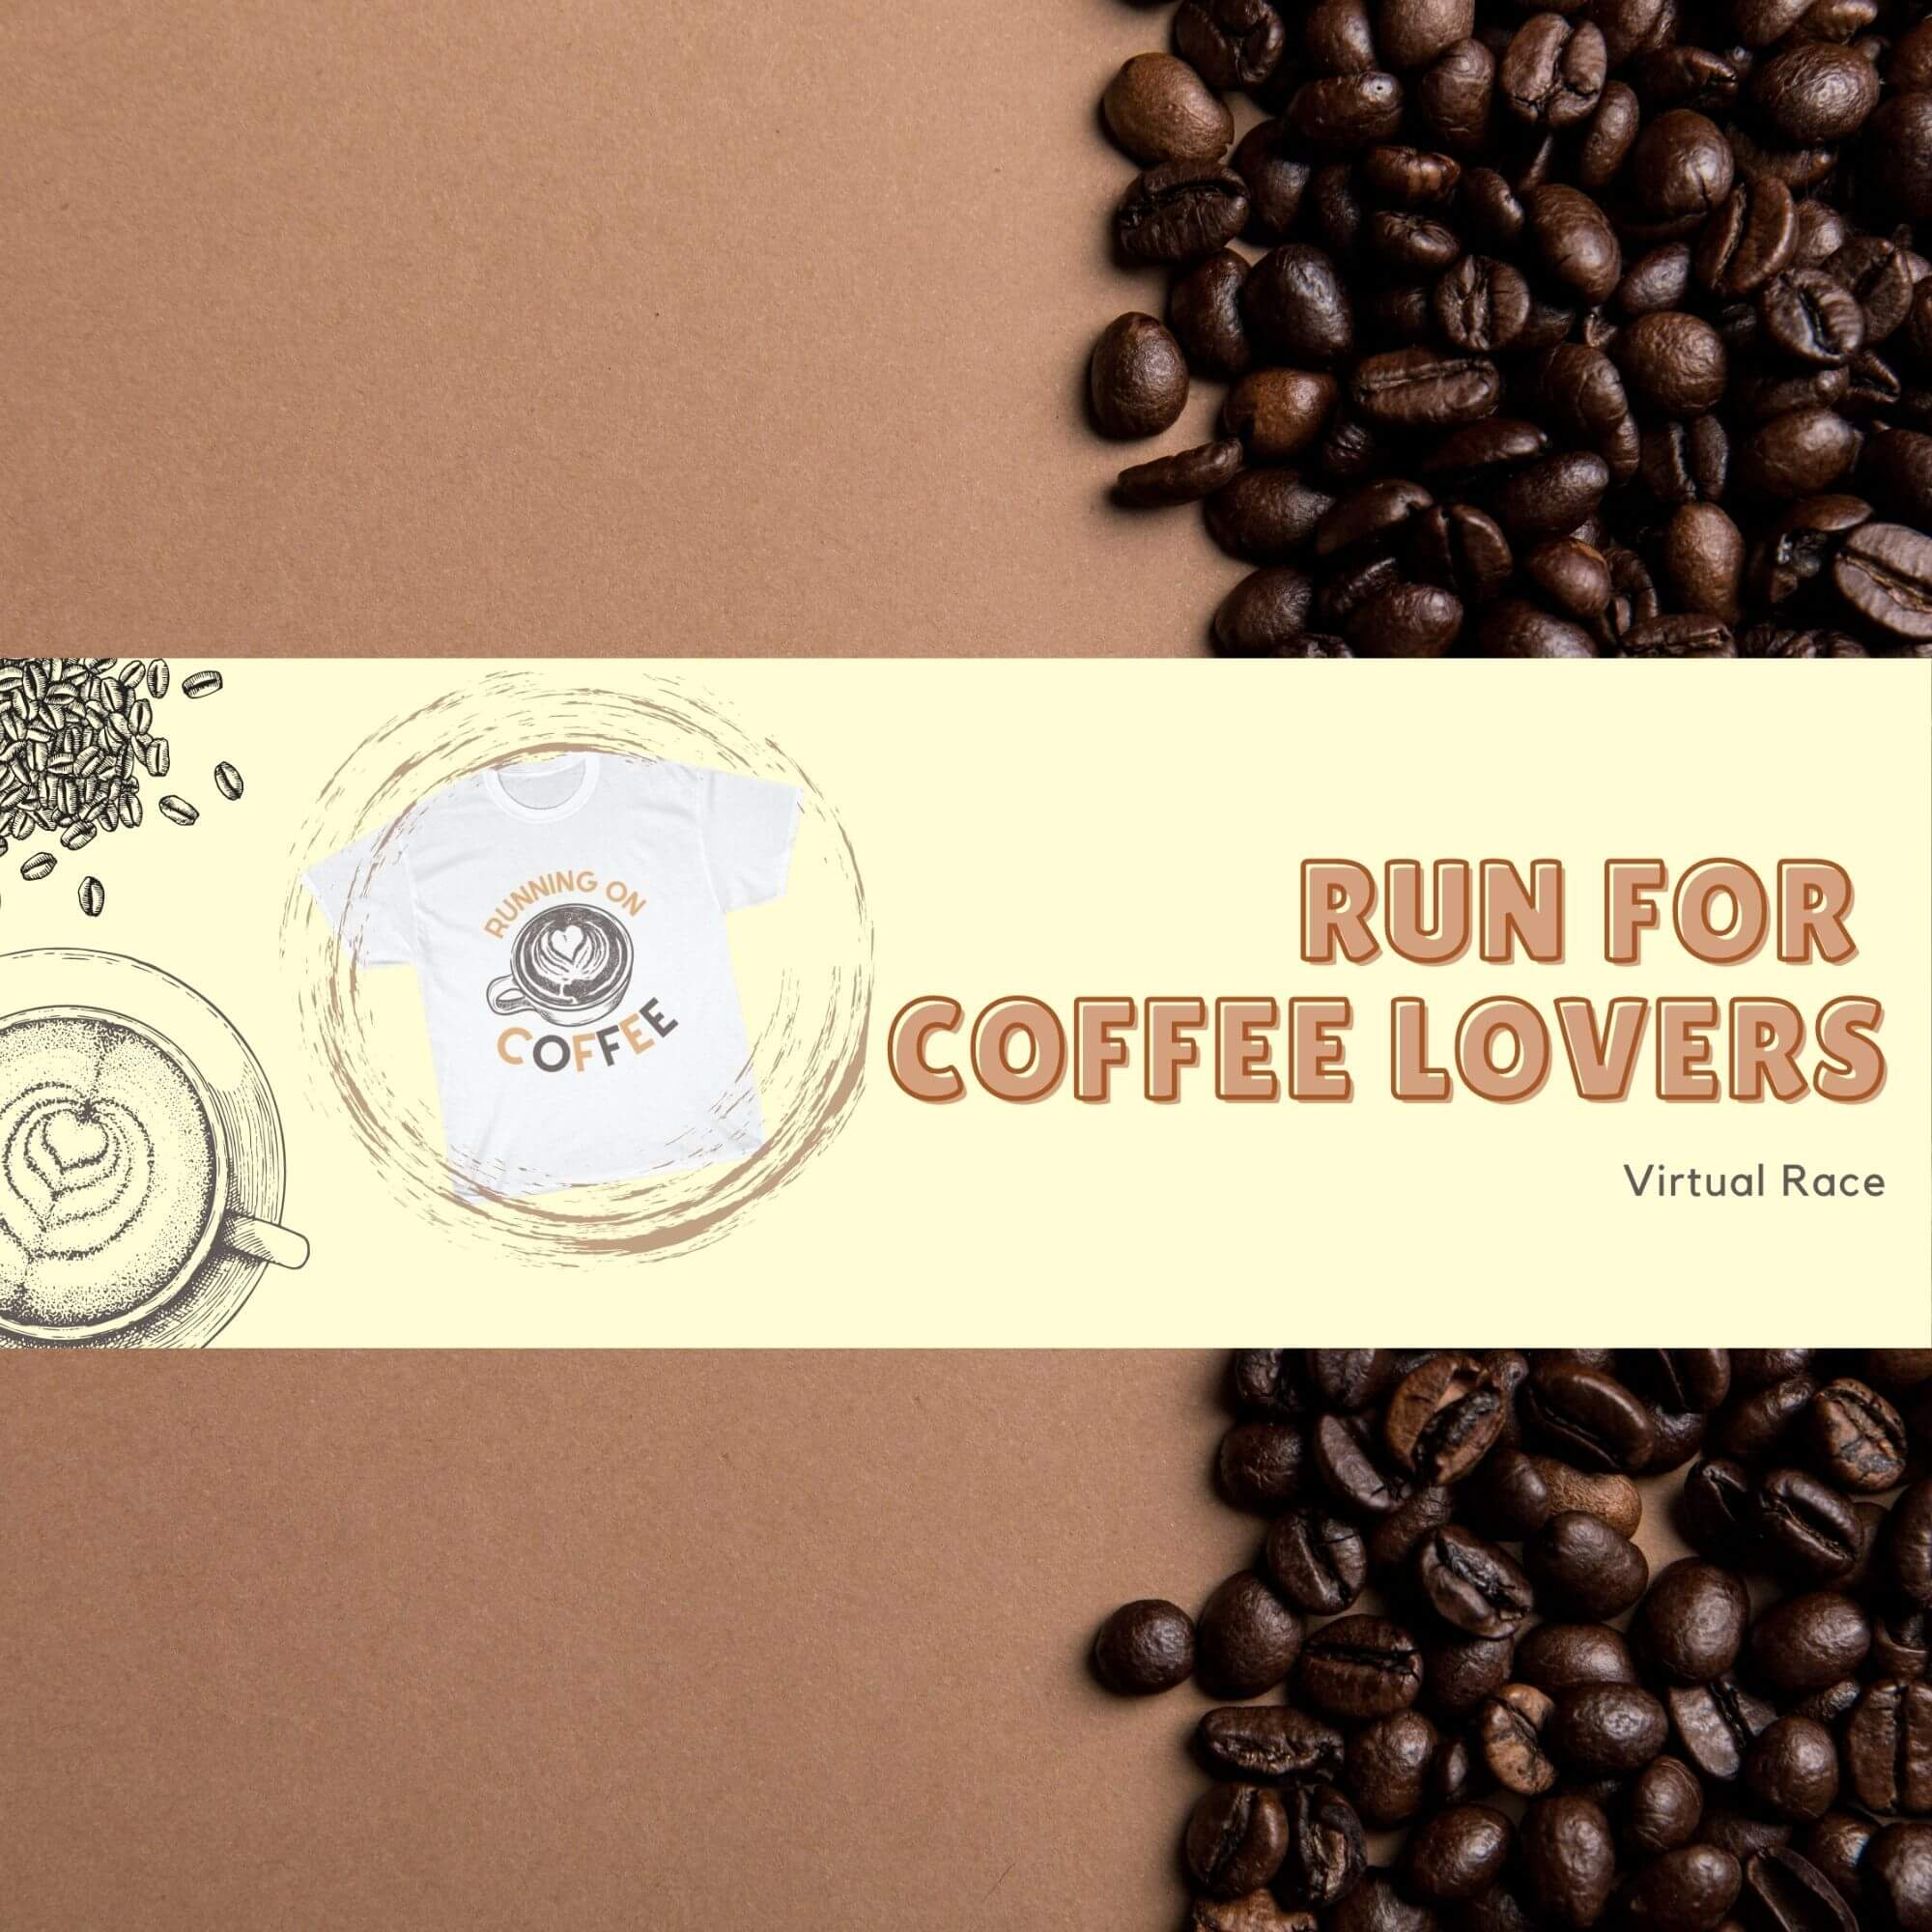 Run for Coffee Lovers VR